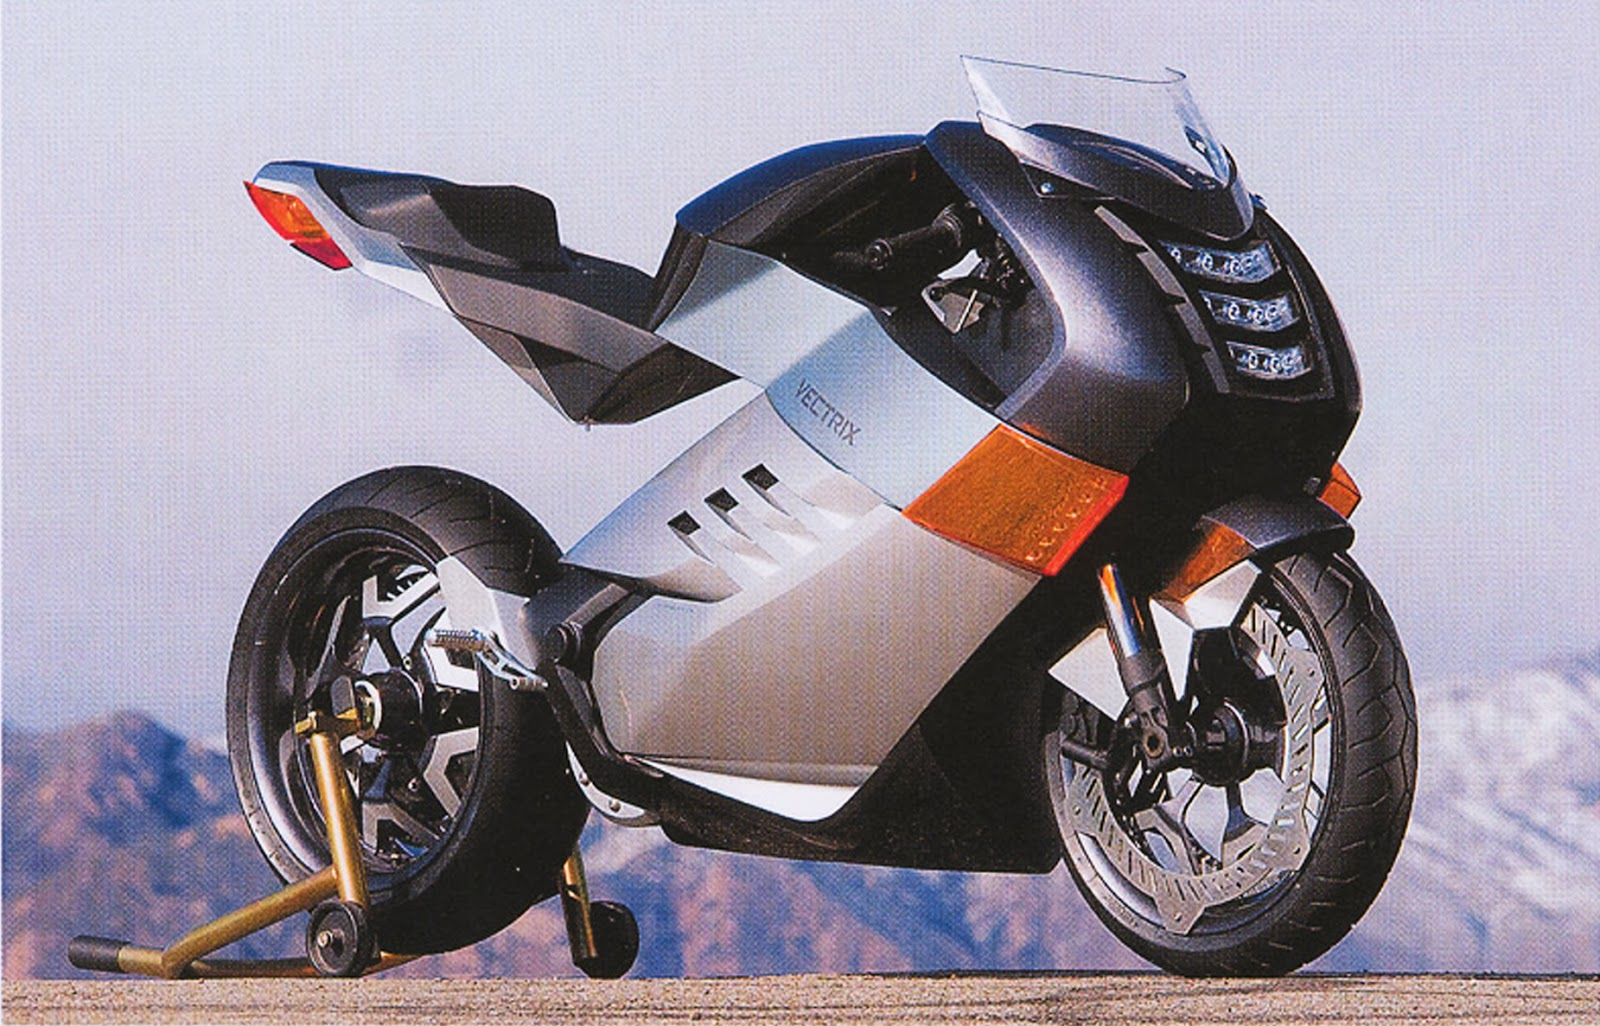 Vectrix superbike photo - 9